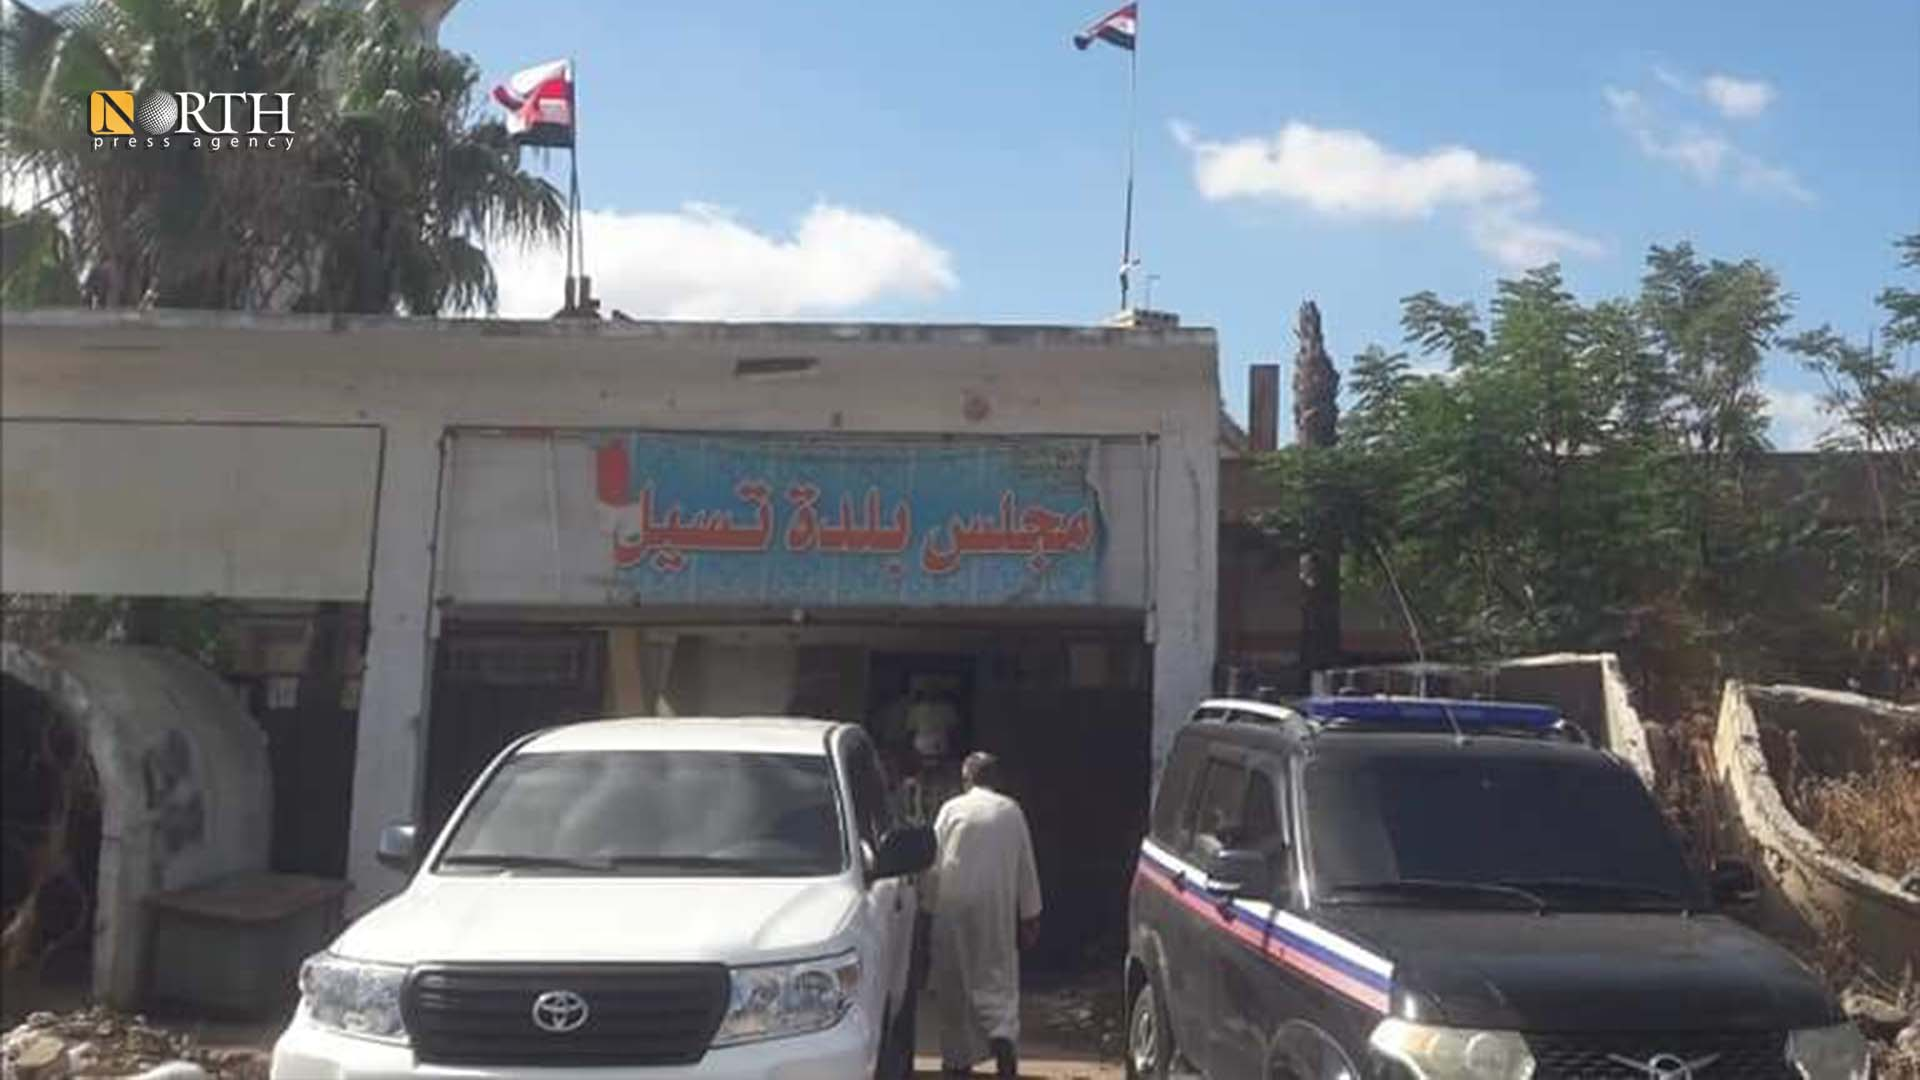 The settlement center in the municipality building in Tasil town of Daraa - North Press